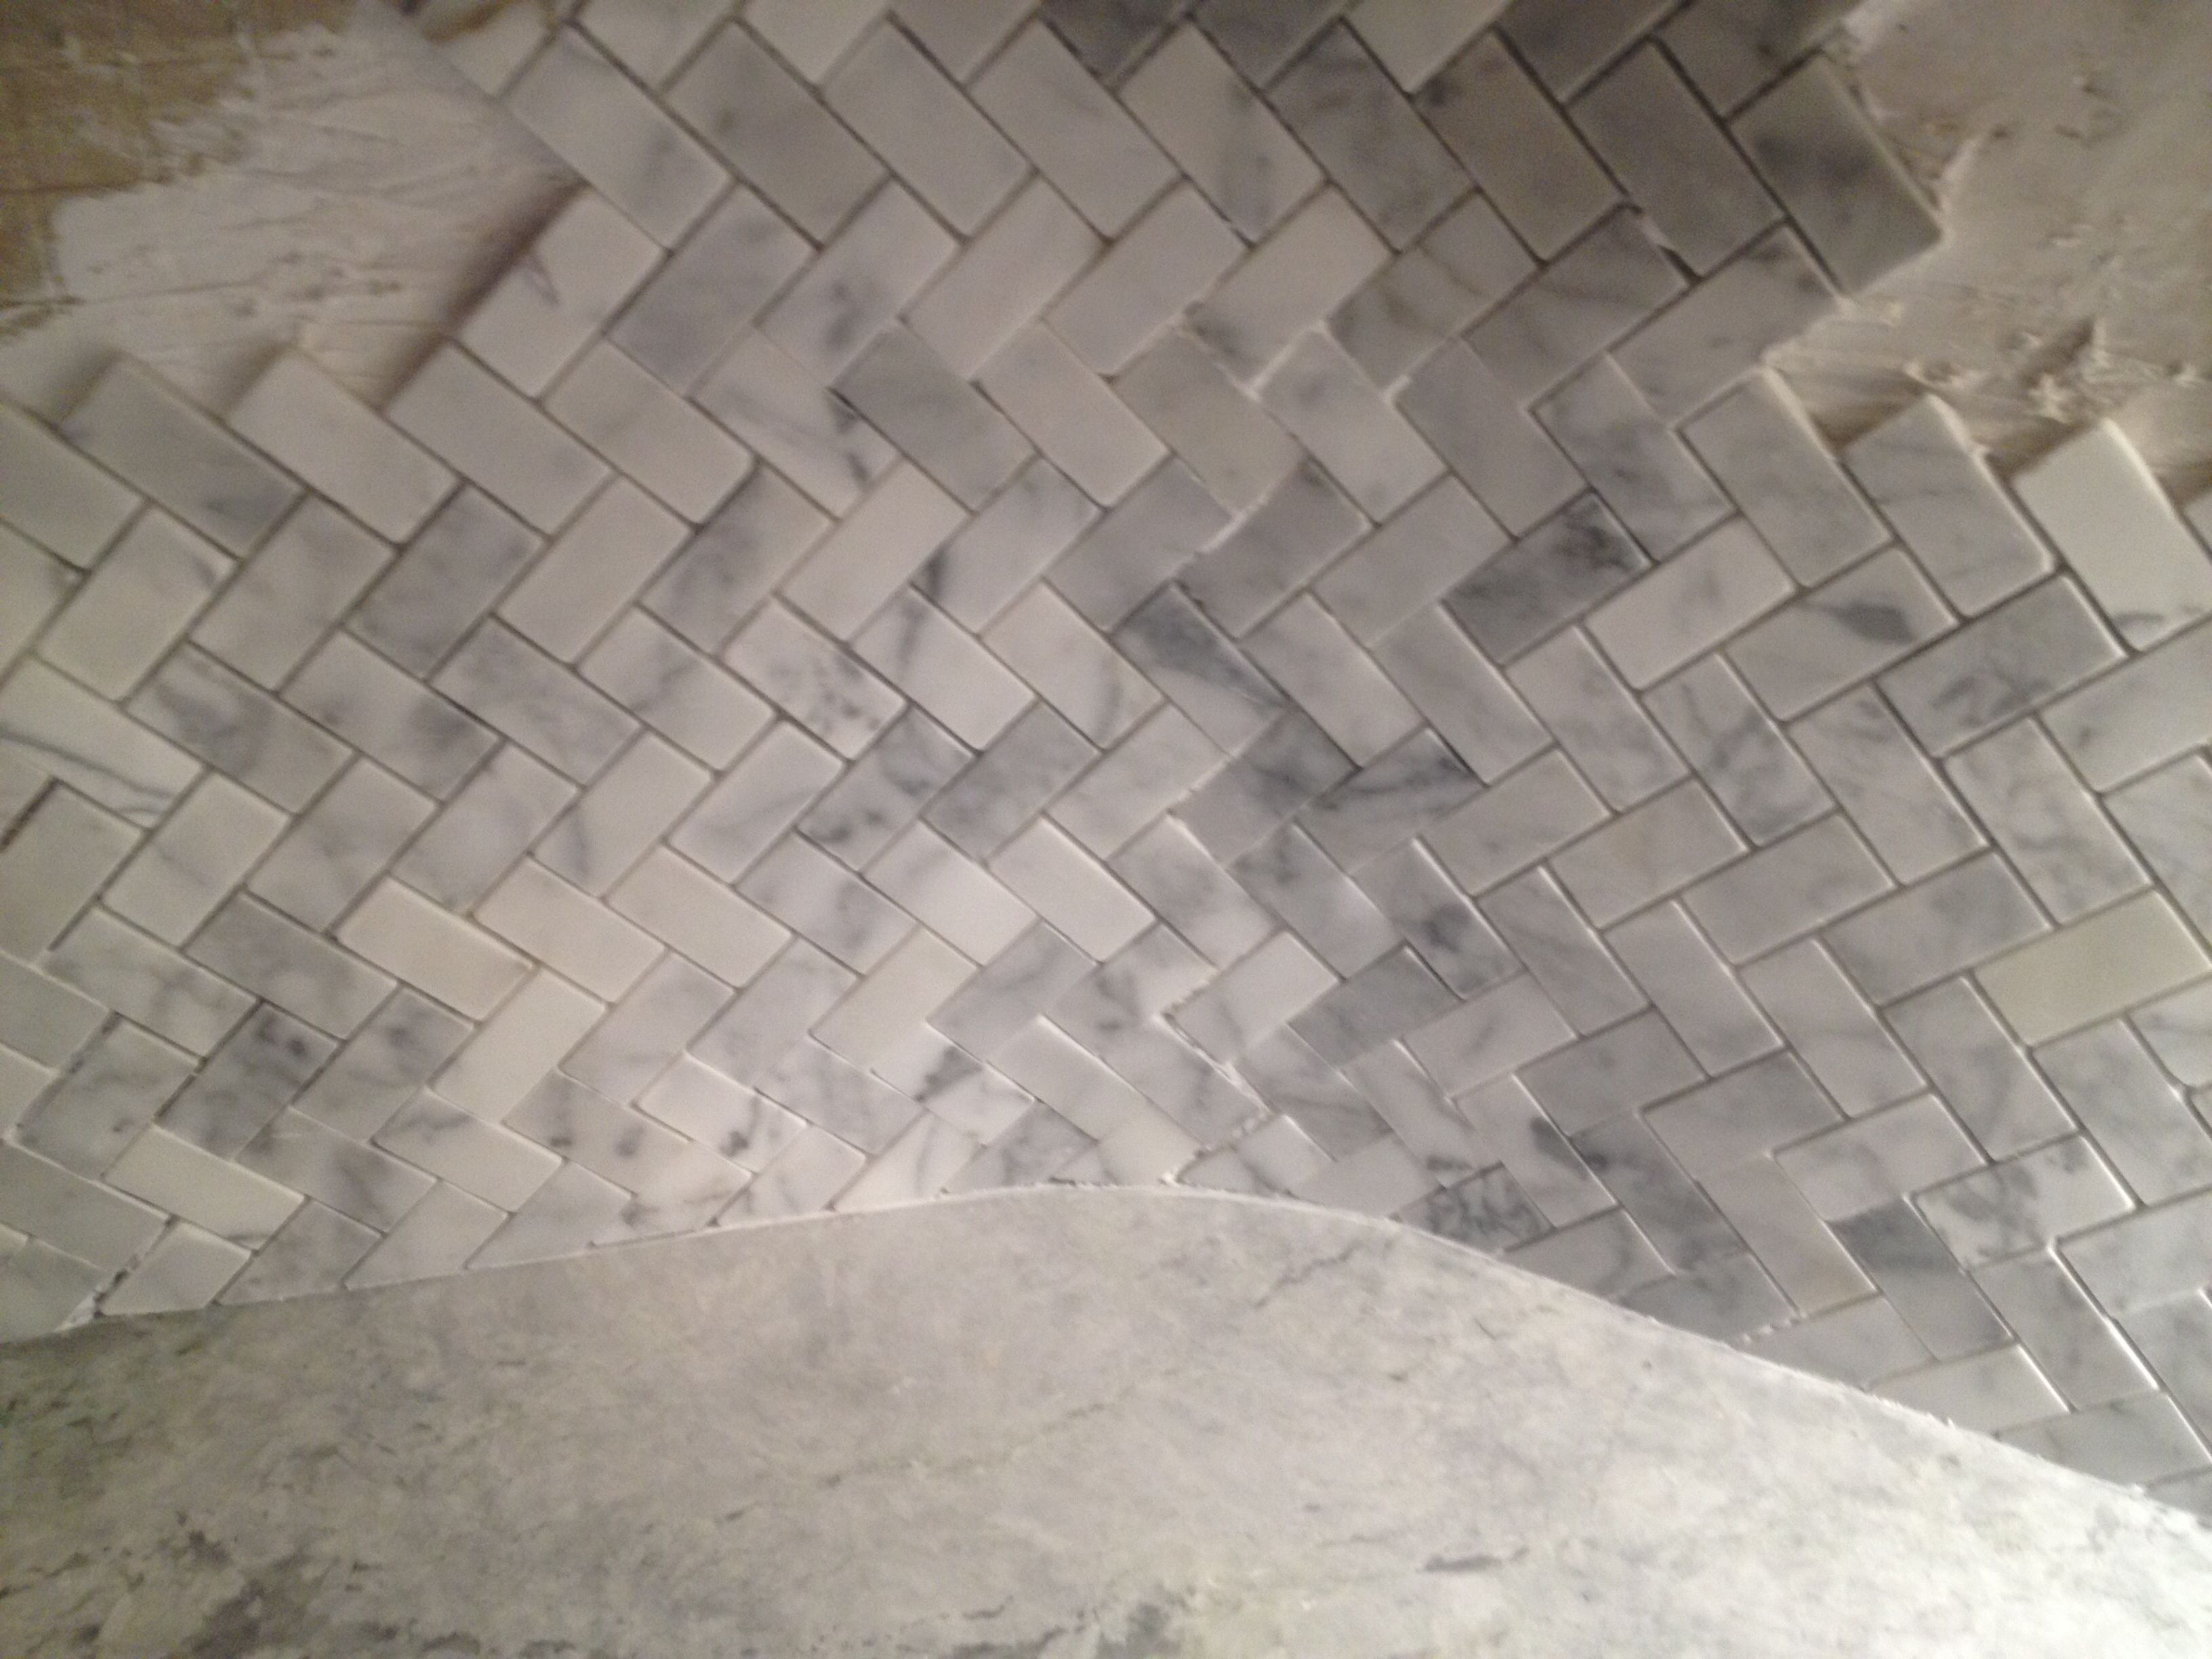 How we tiled an interior corner of the backsplash created a curved wall behind it for a smooth - Backsplash corners ...